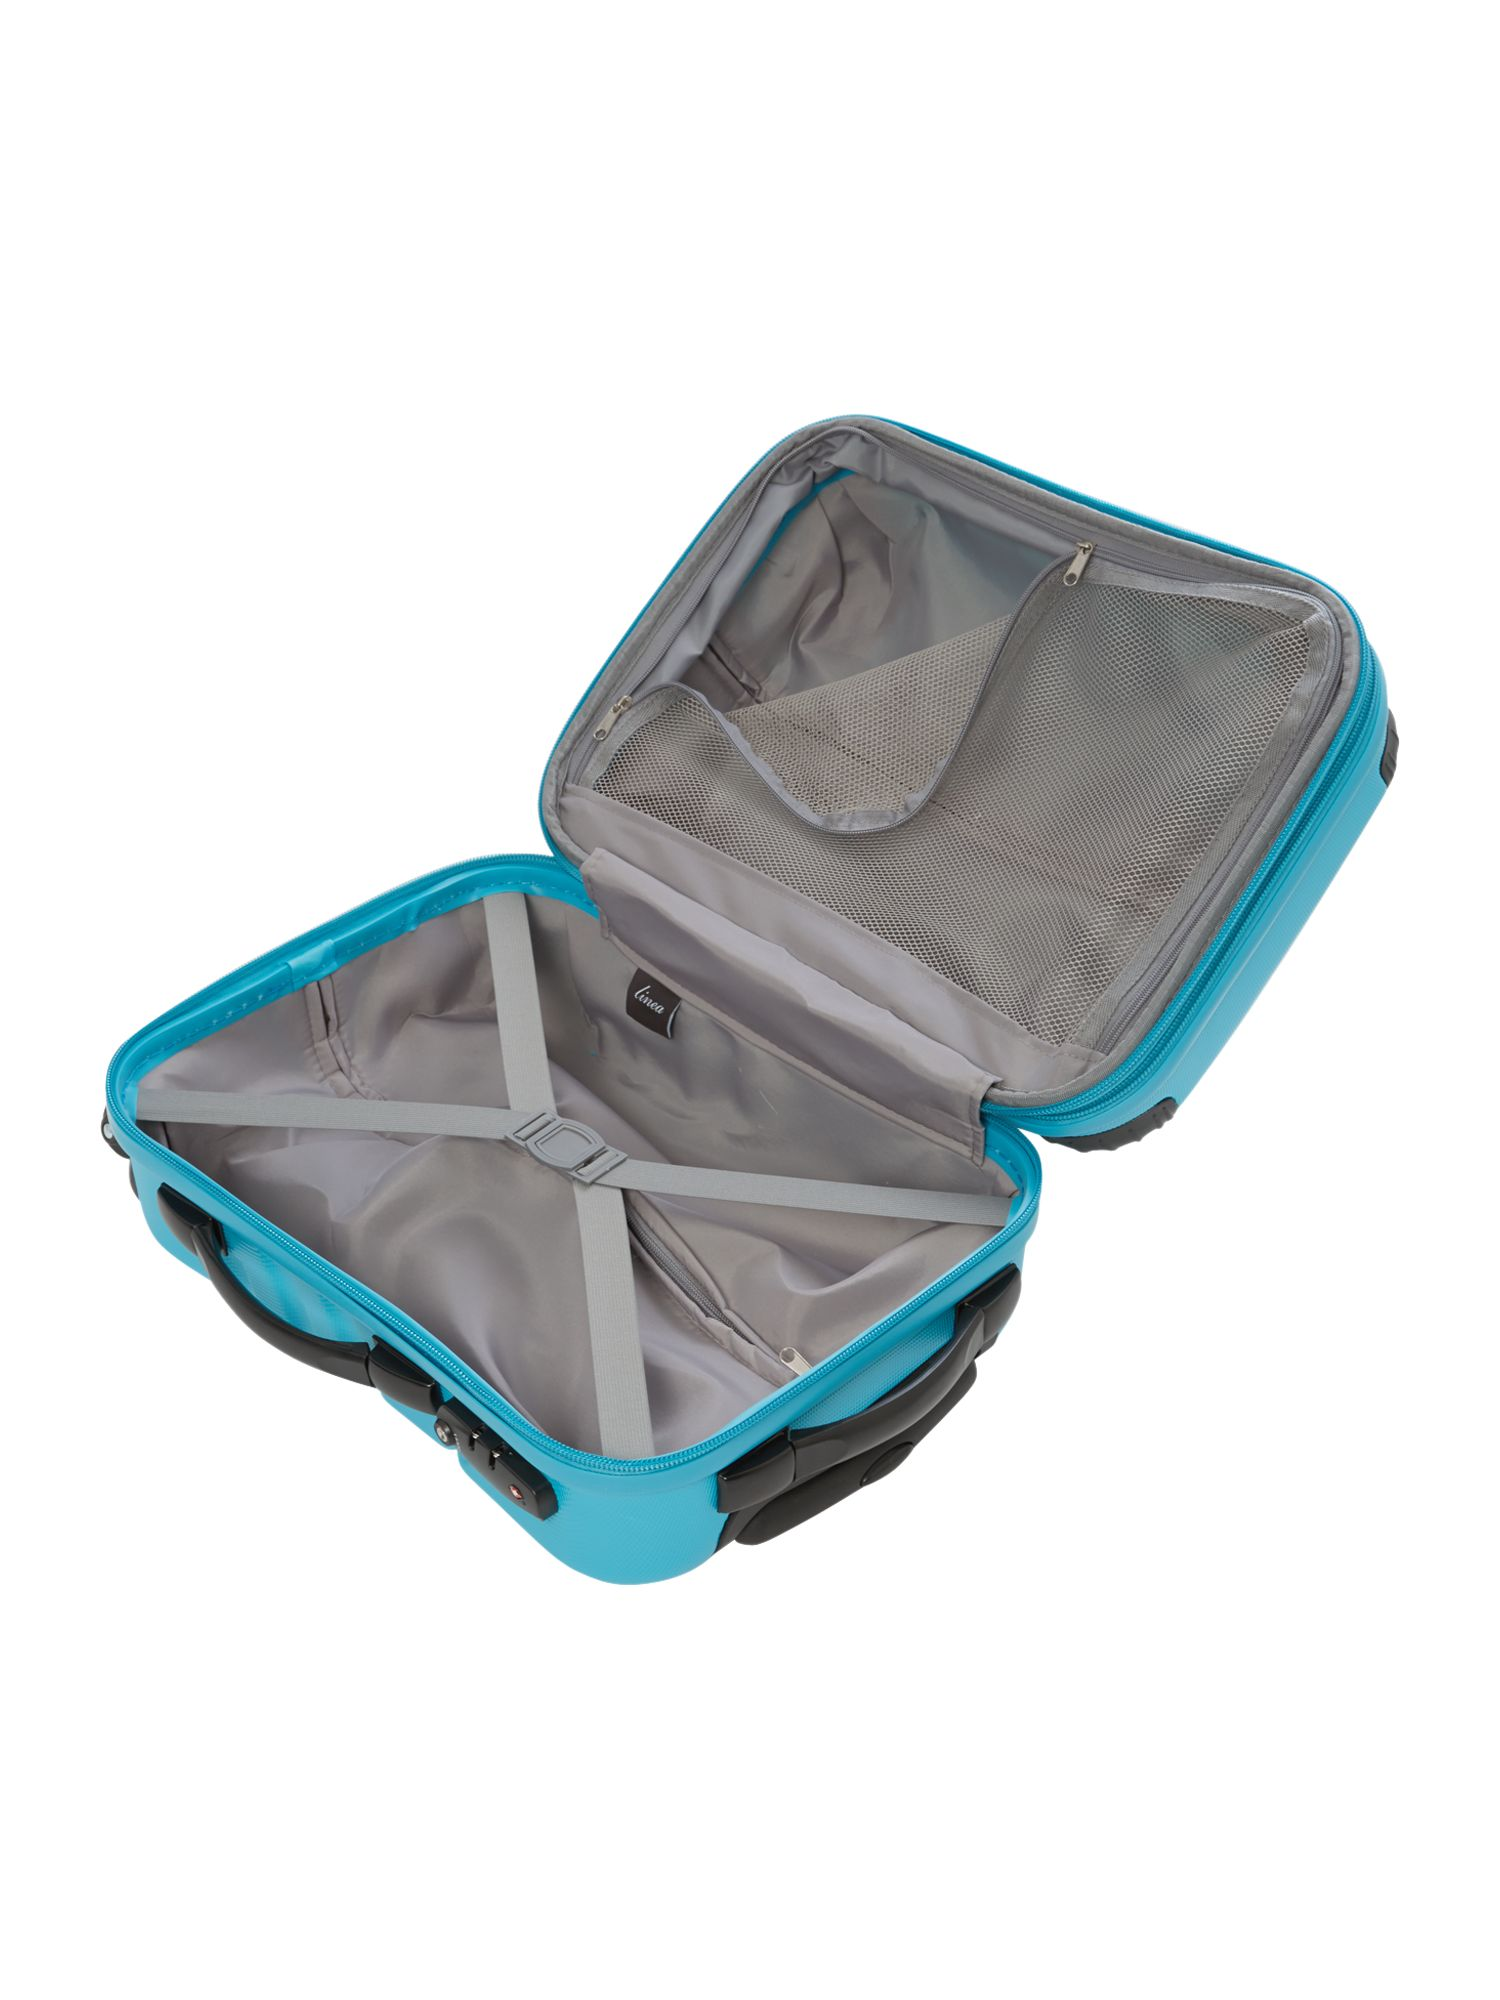 Shell aqua 2 wheel hard cabin suitcase